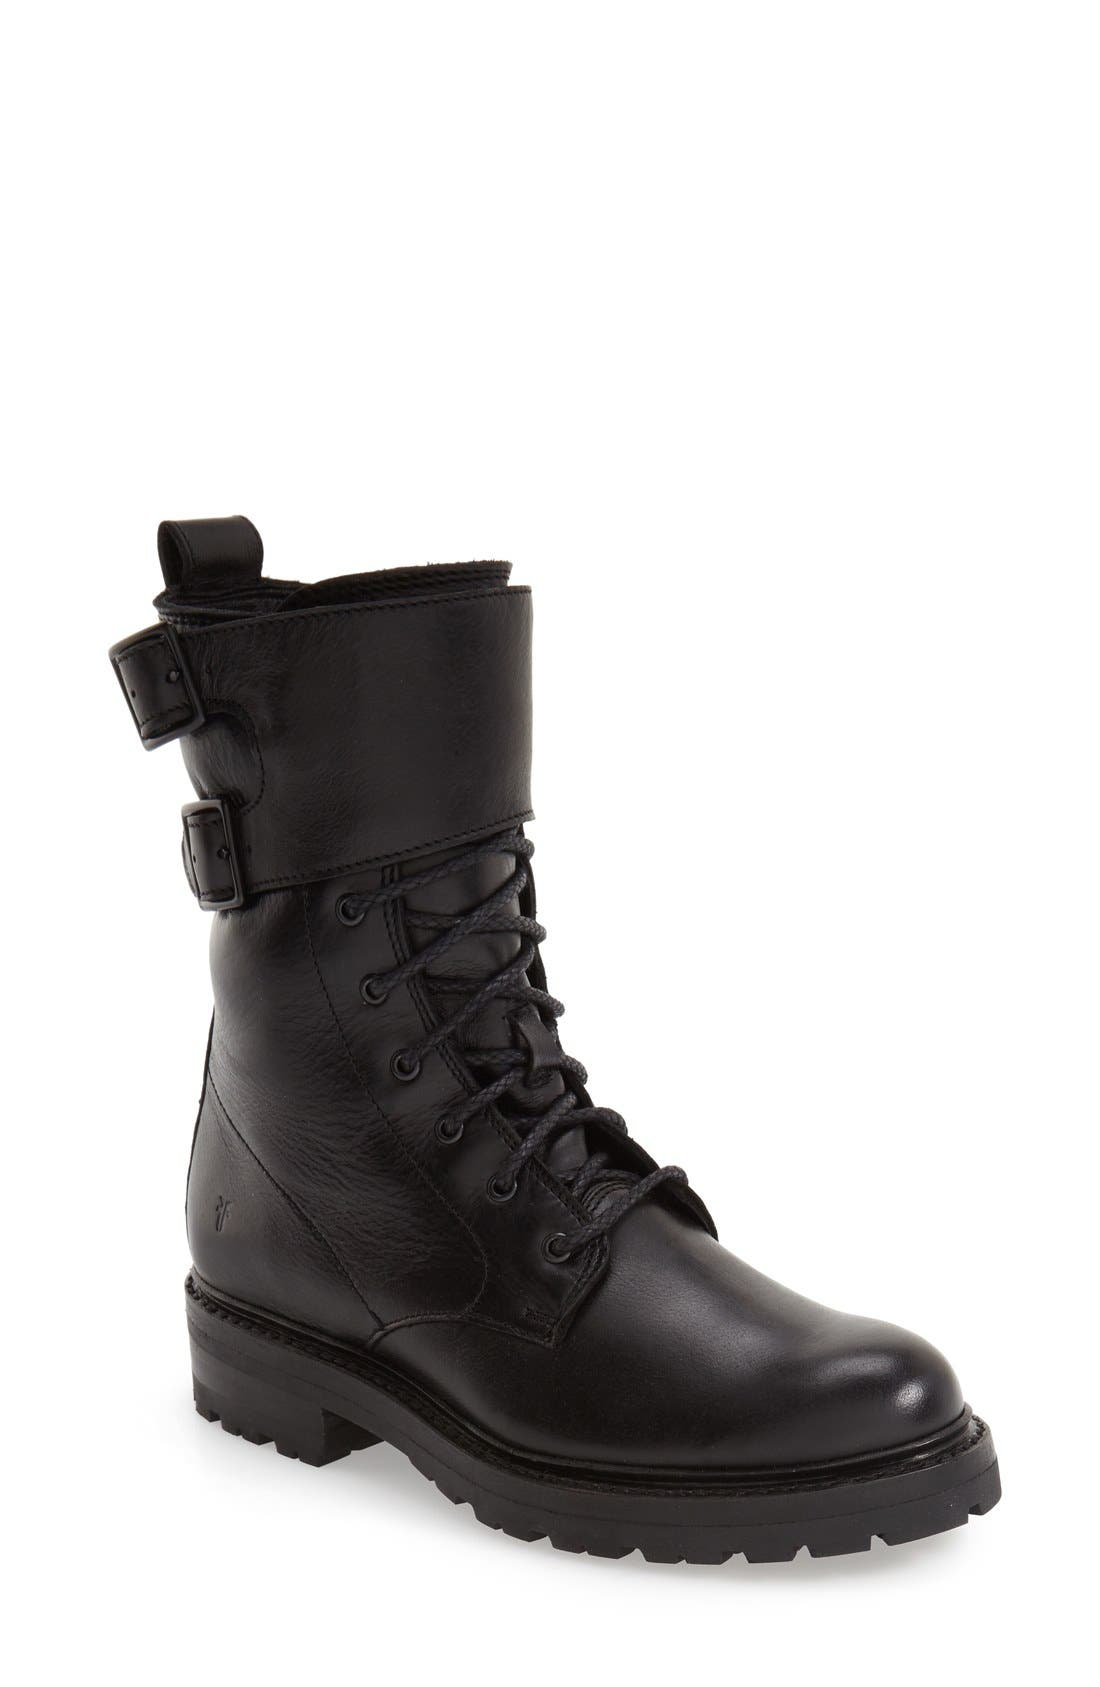 Alternate Image 1 Selected - Frye 'Julie' Shield Combat Boot (Women)